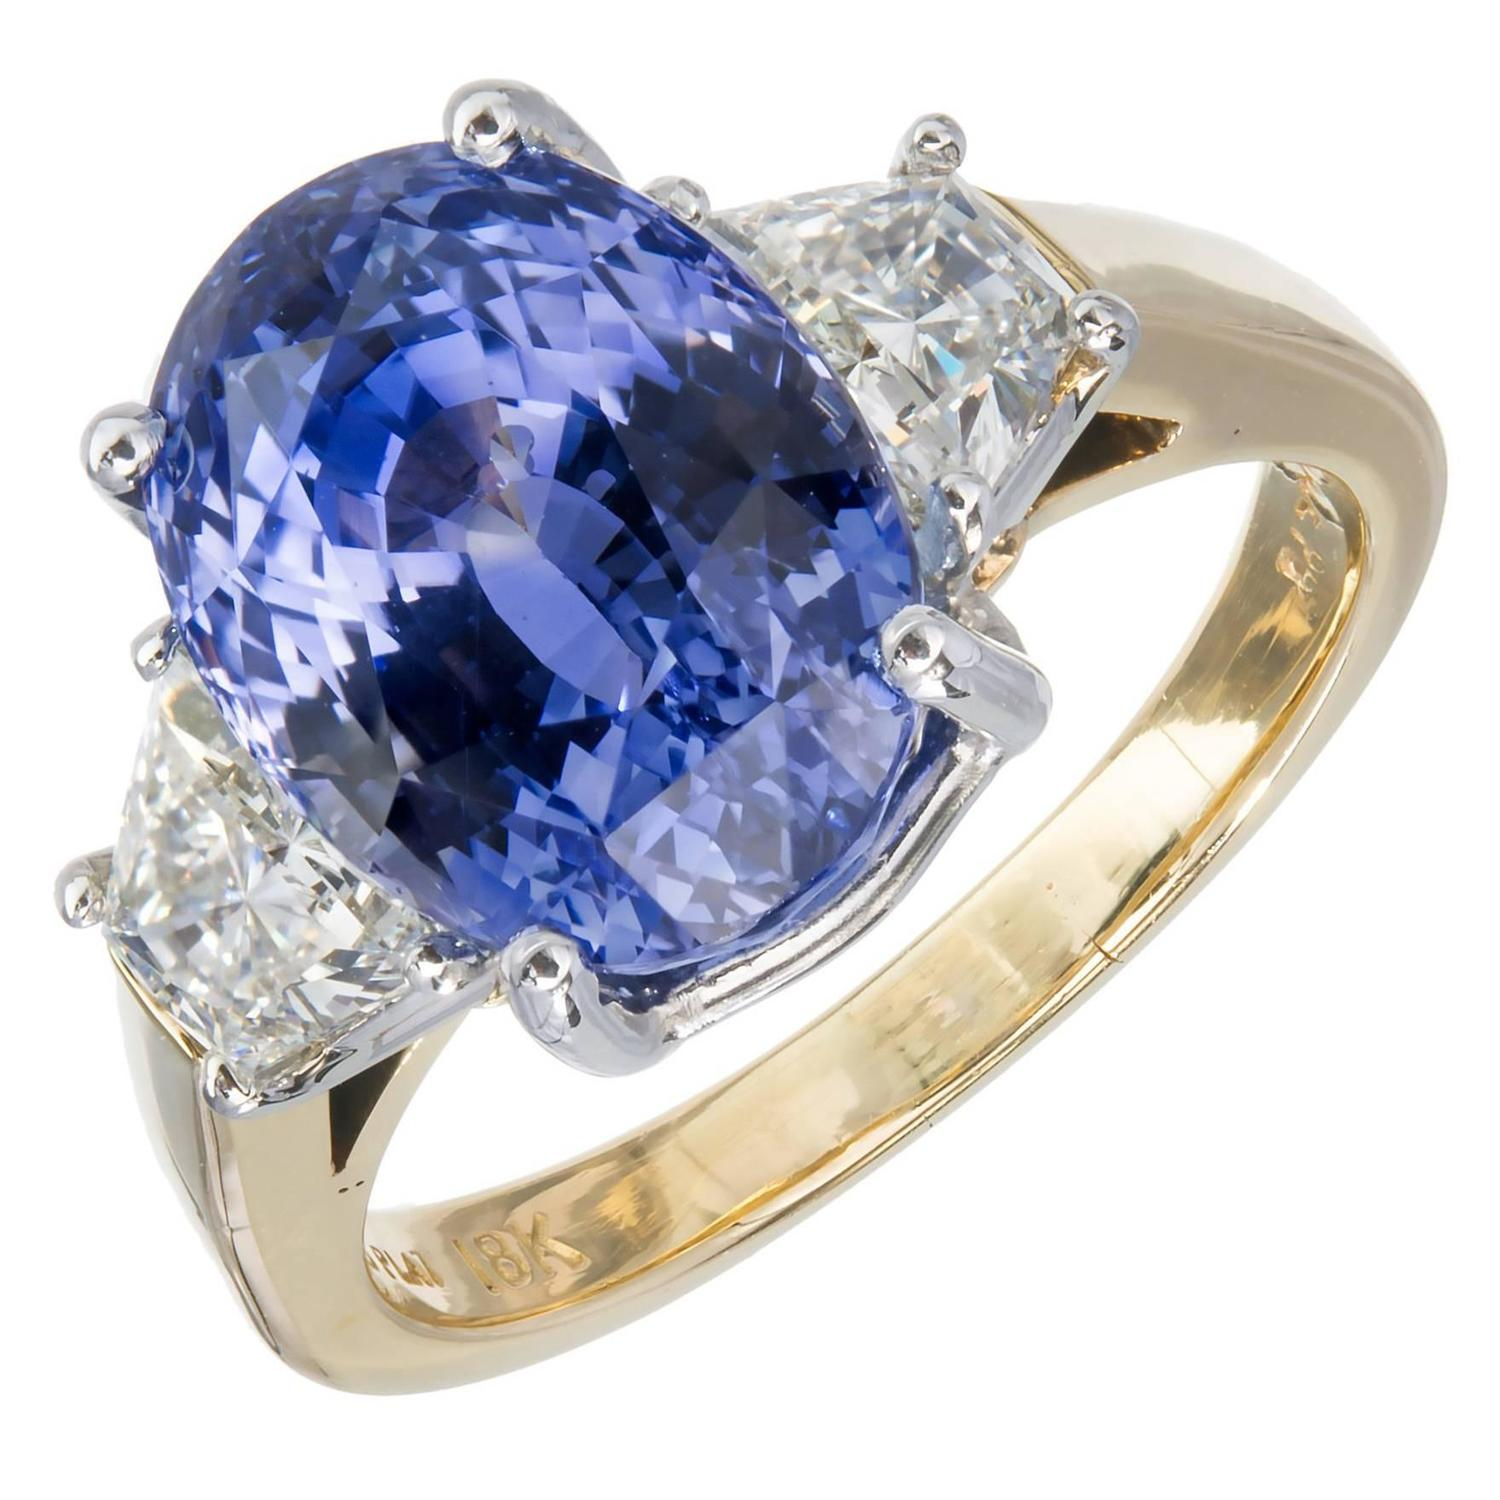 7 75 Carat Blue Sapphire Diamond Gold Three Stone Engagement Ring